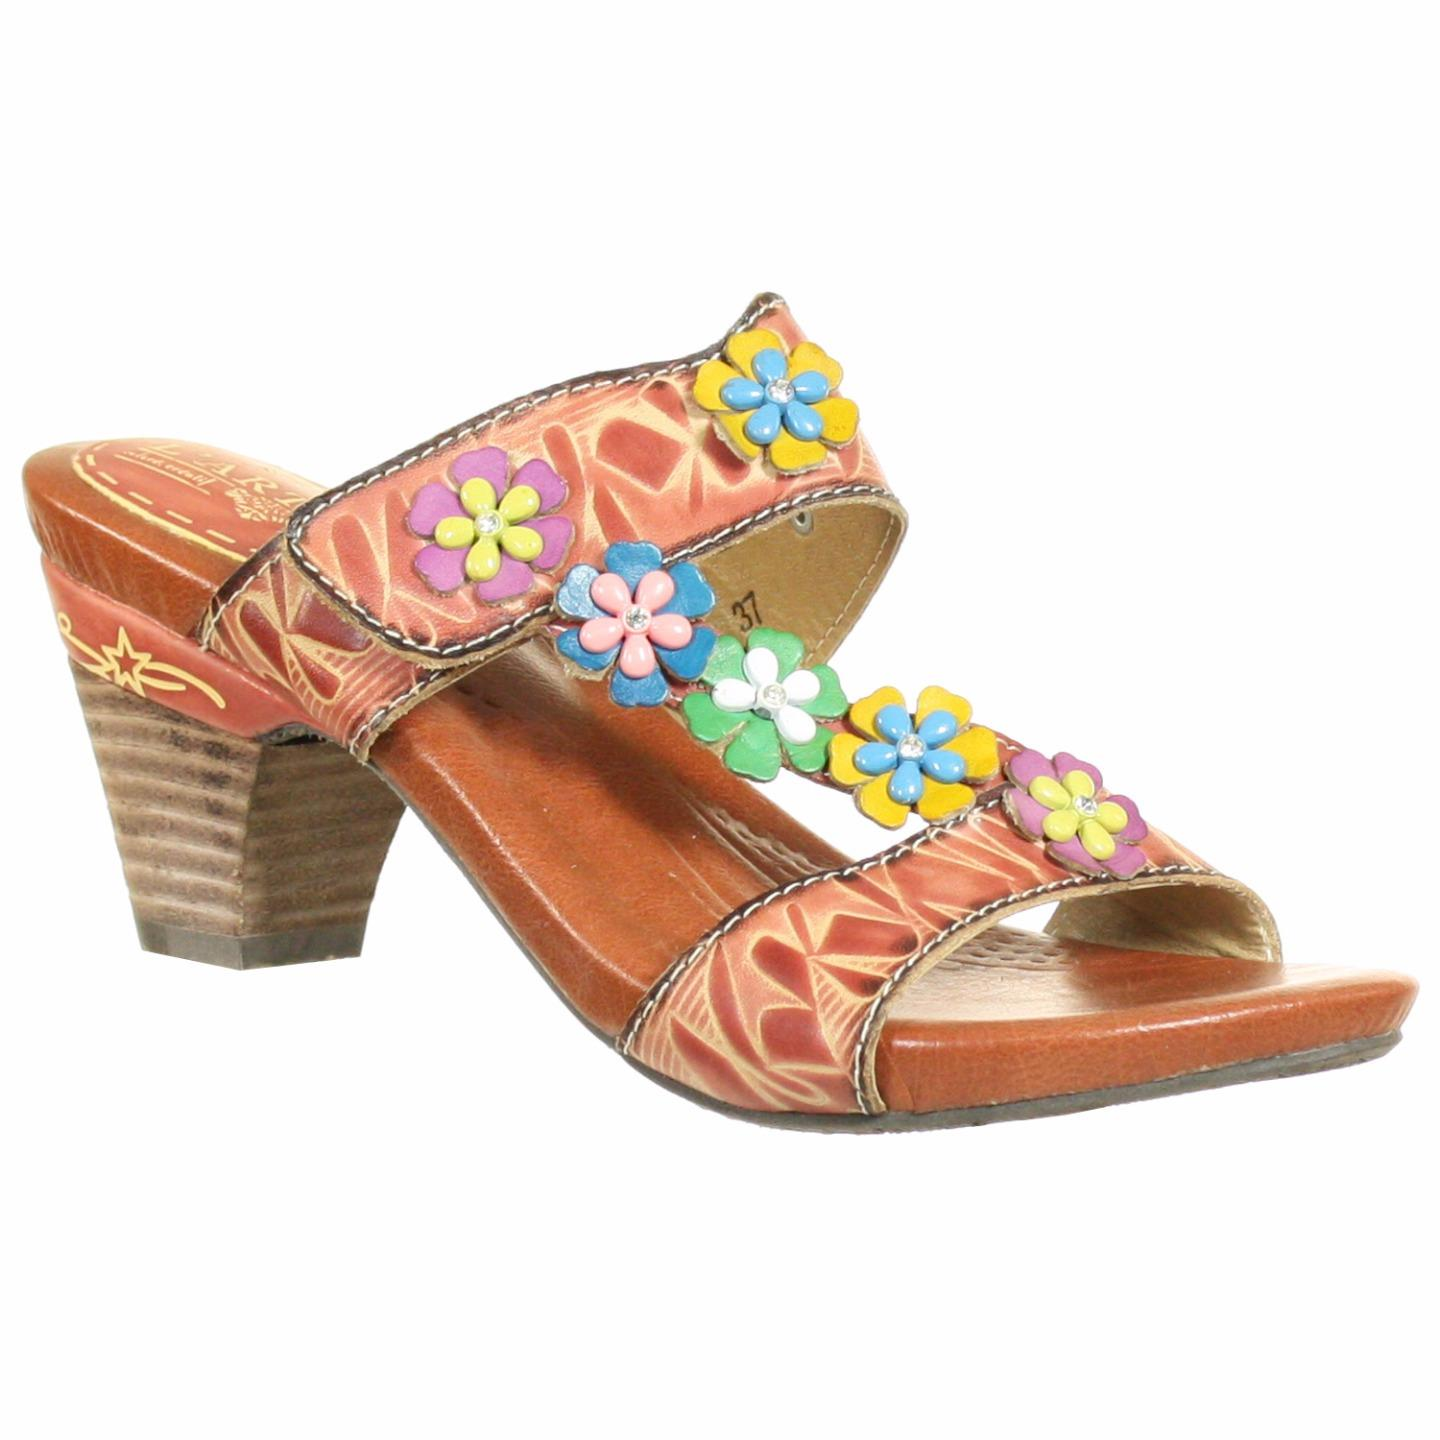 L'Artiste Collection By Spring Step Women's Allison Sandal Pink Multi EU 37 US 7 by Spring Step